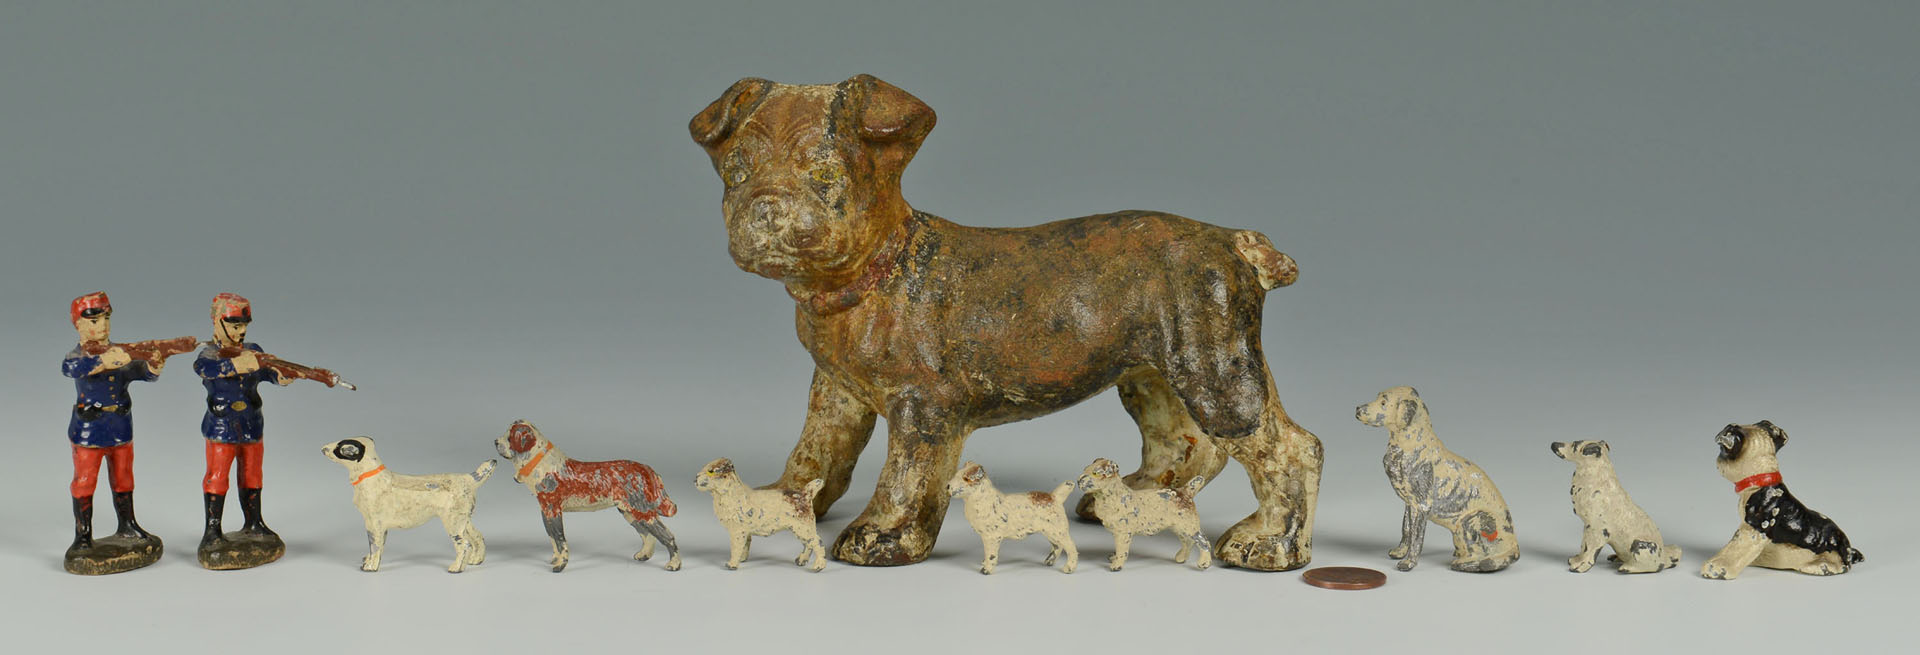 Lot 593: Grouping of Miniature Metal Toy Soldiers and dogs